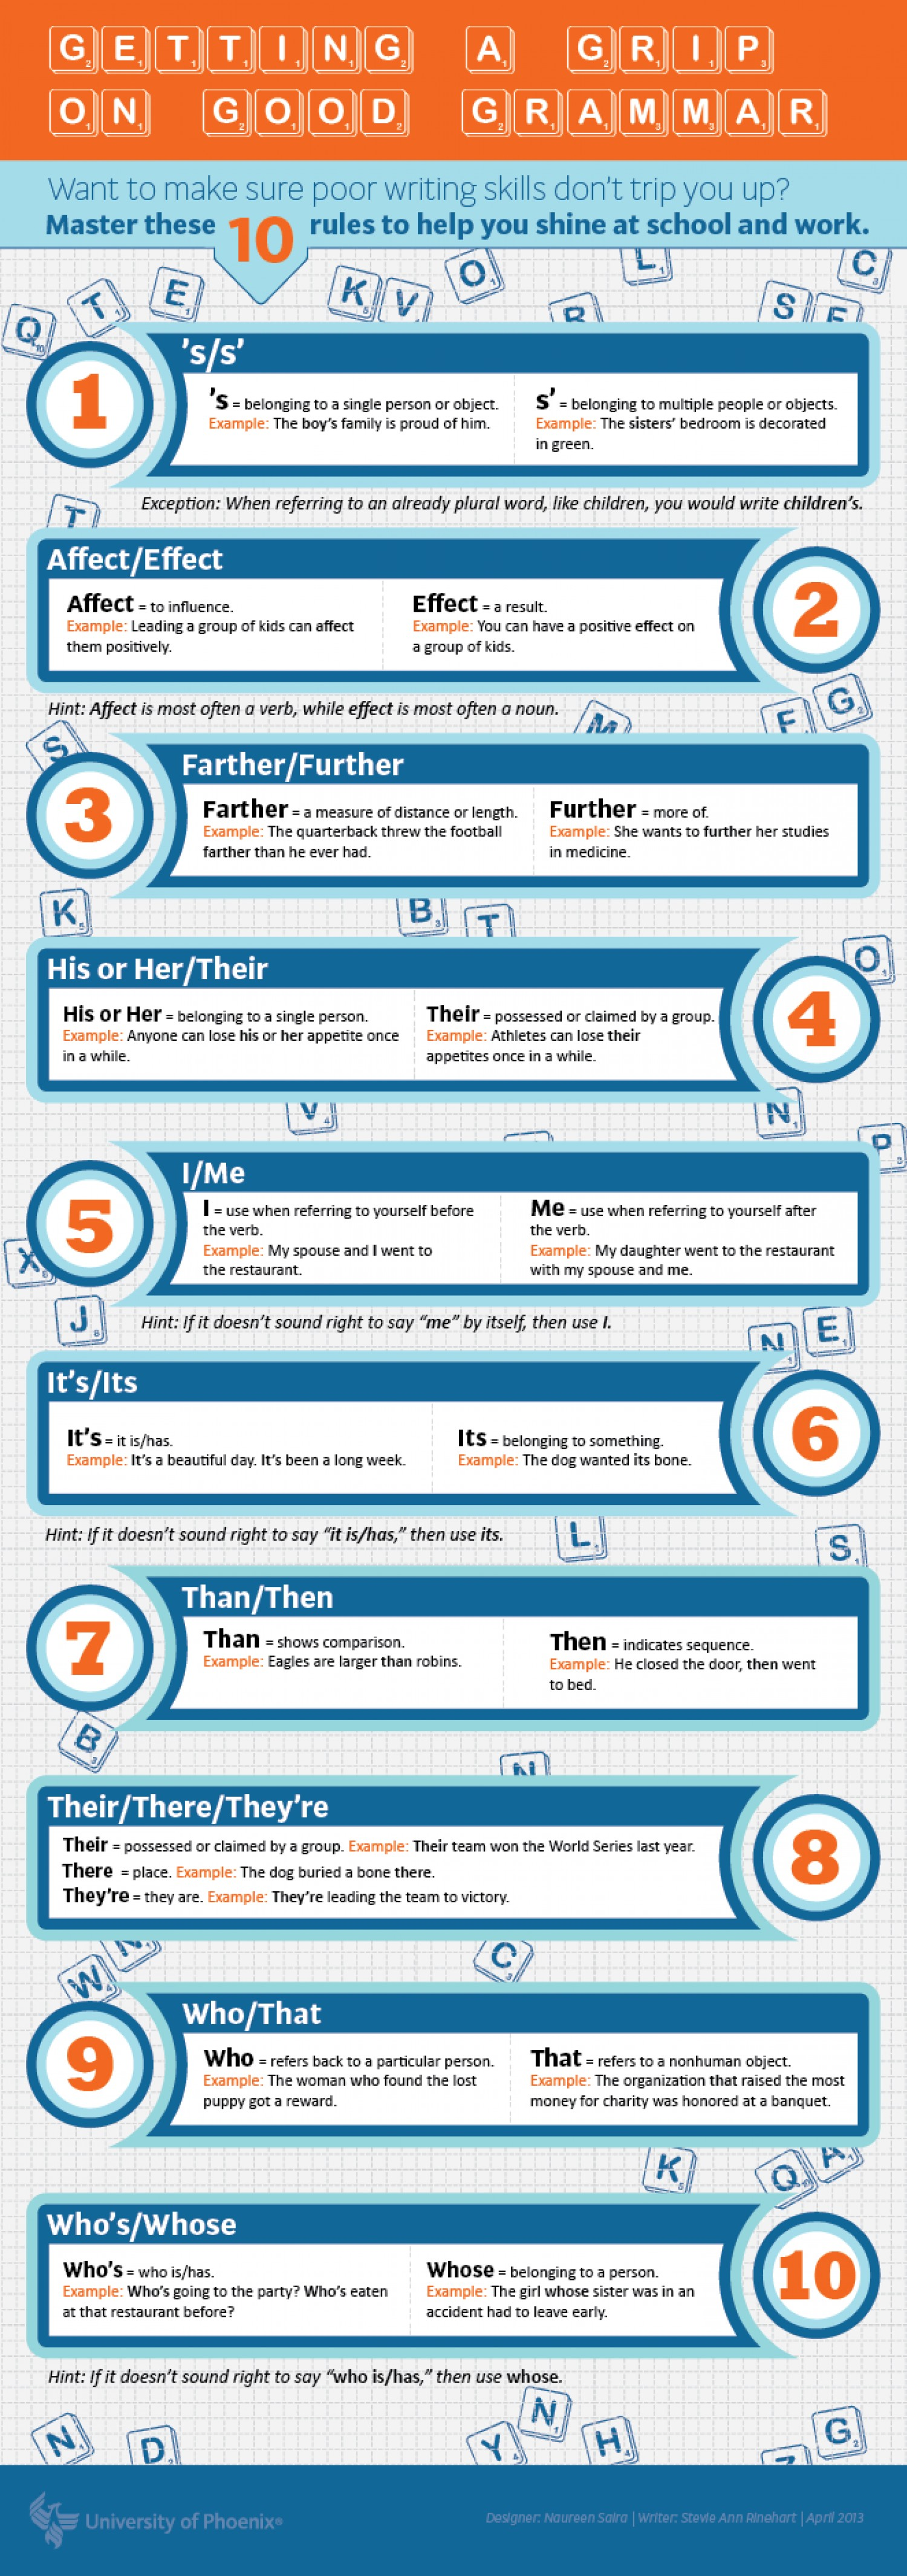 infrographic 10 grammar rules